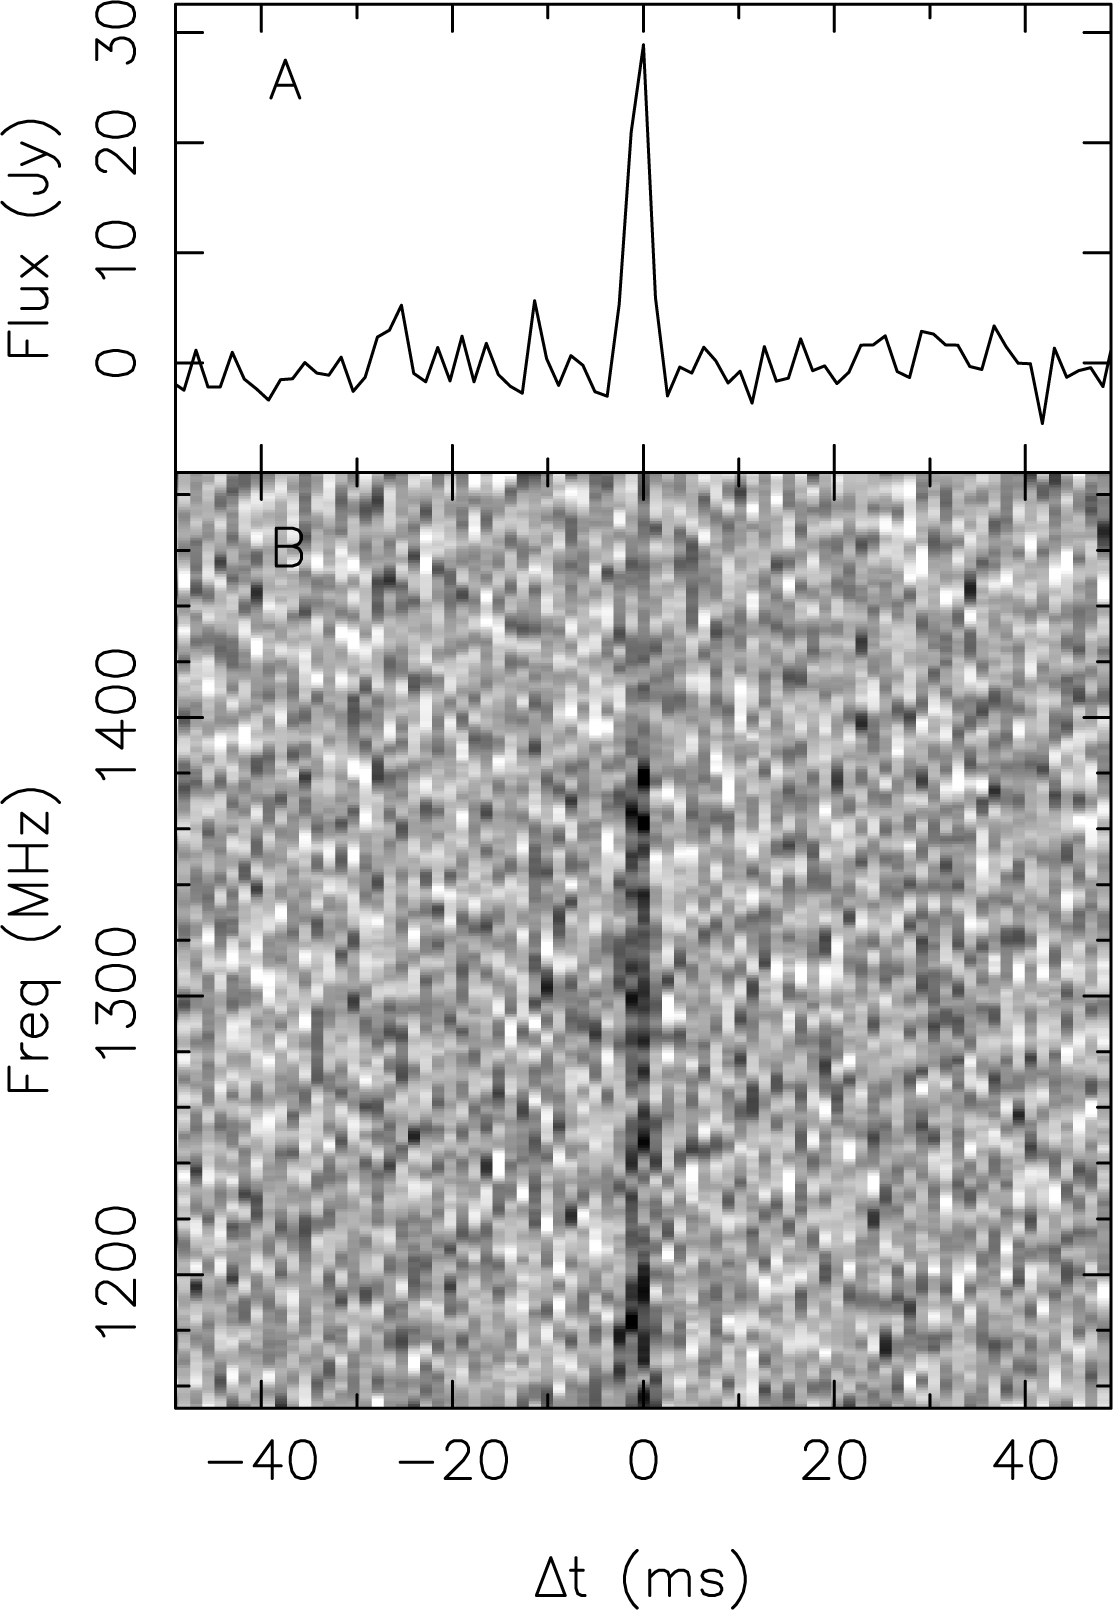 The signal of FRB 170107.